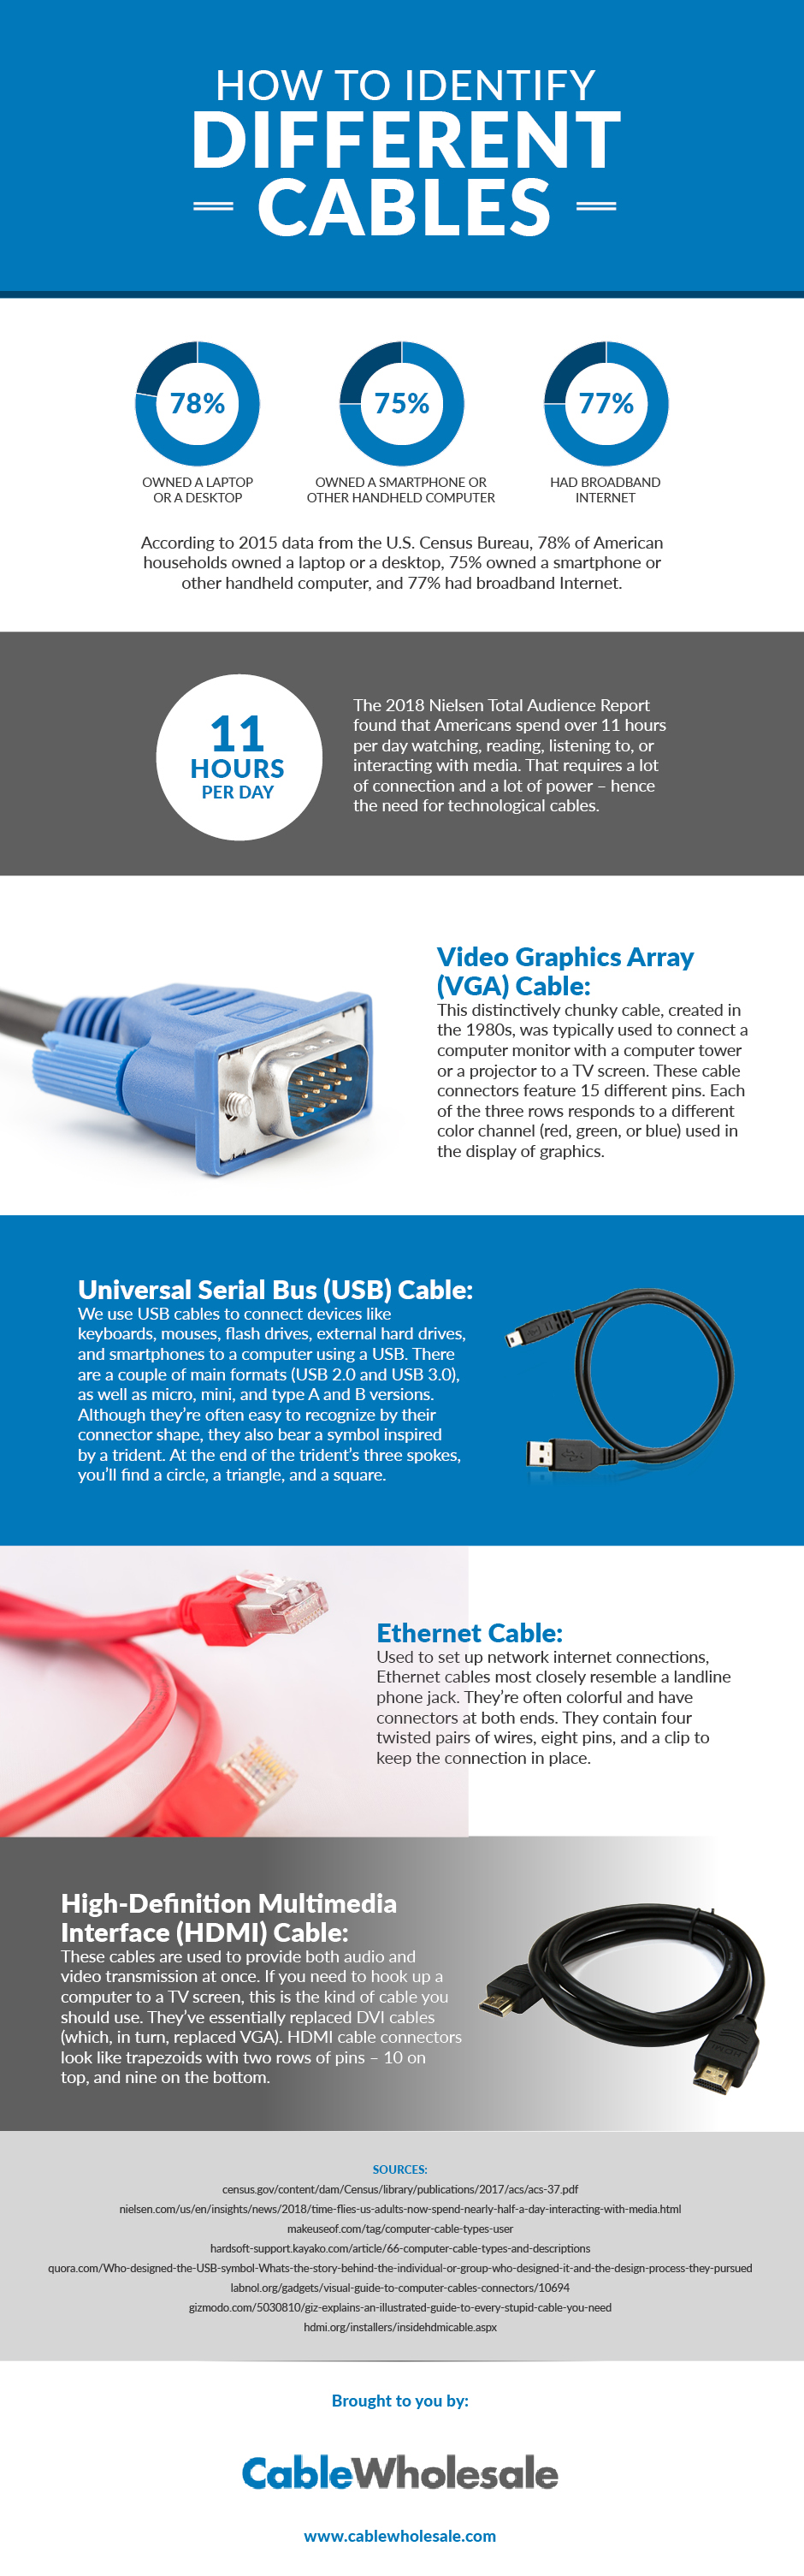 how to identify different cables